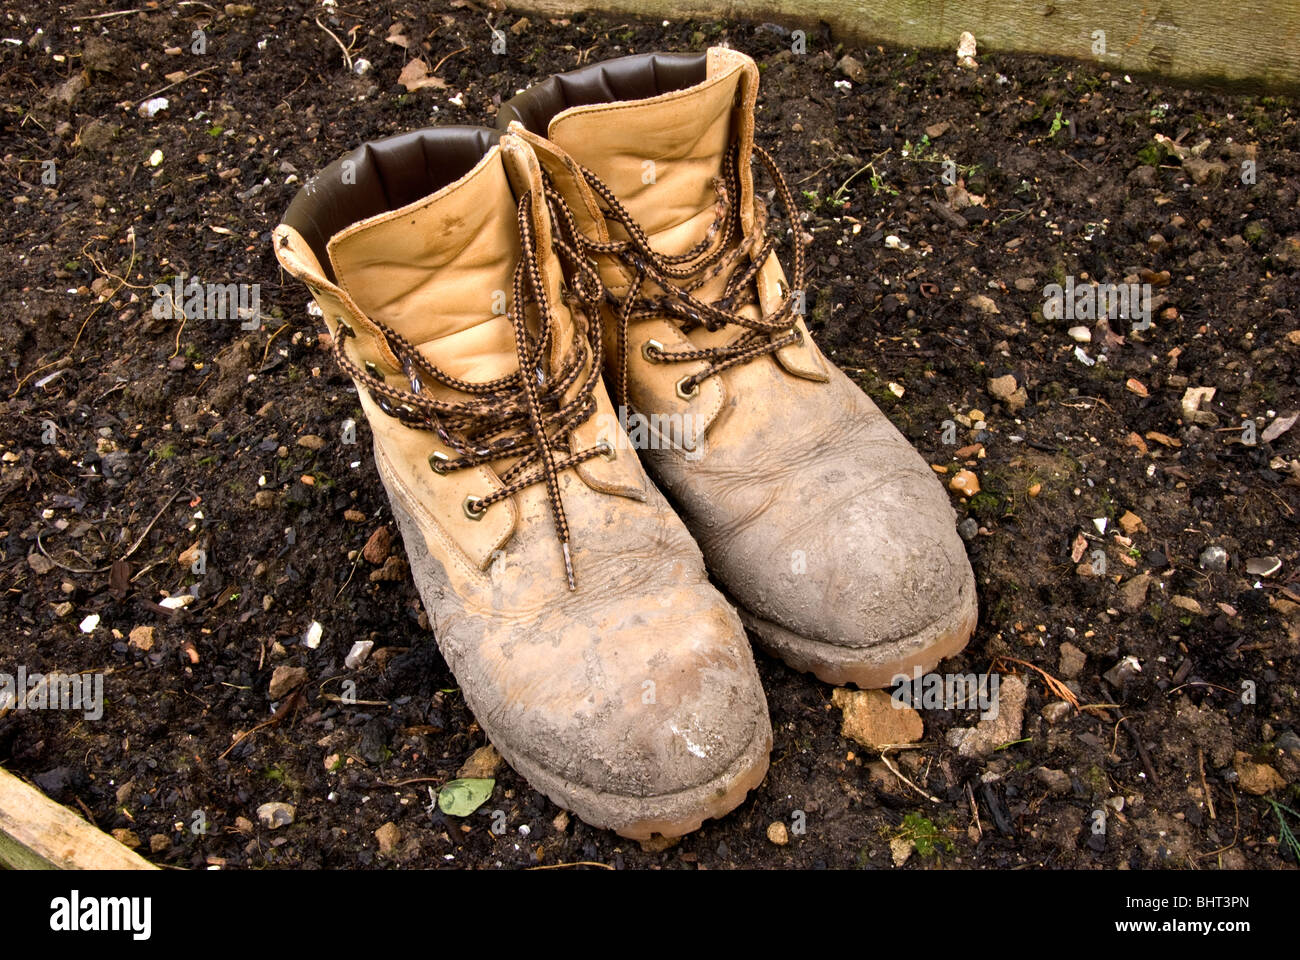 Dirty gardening boots on soil Stock Photo: 28189357 - Alamy